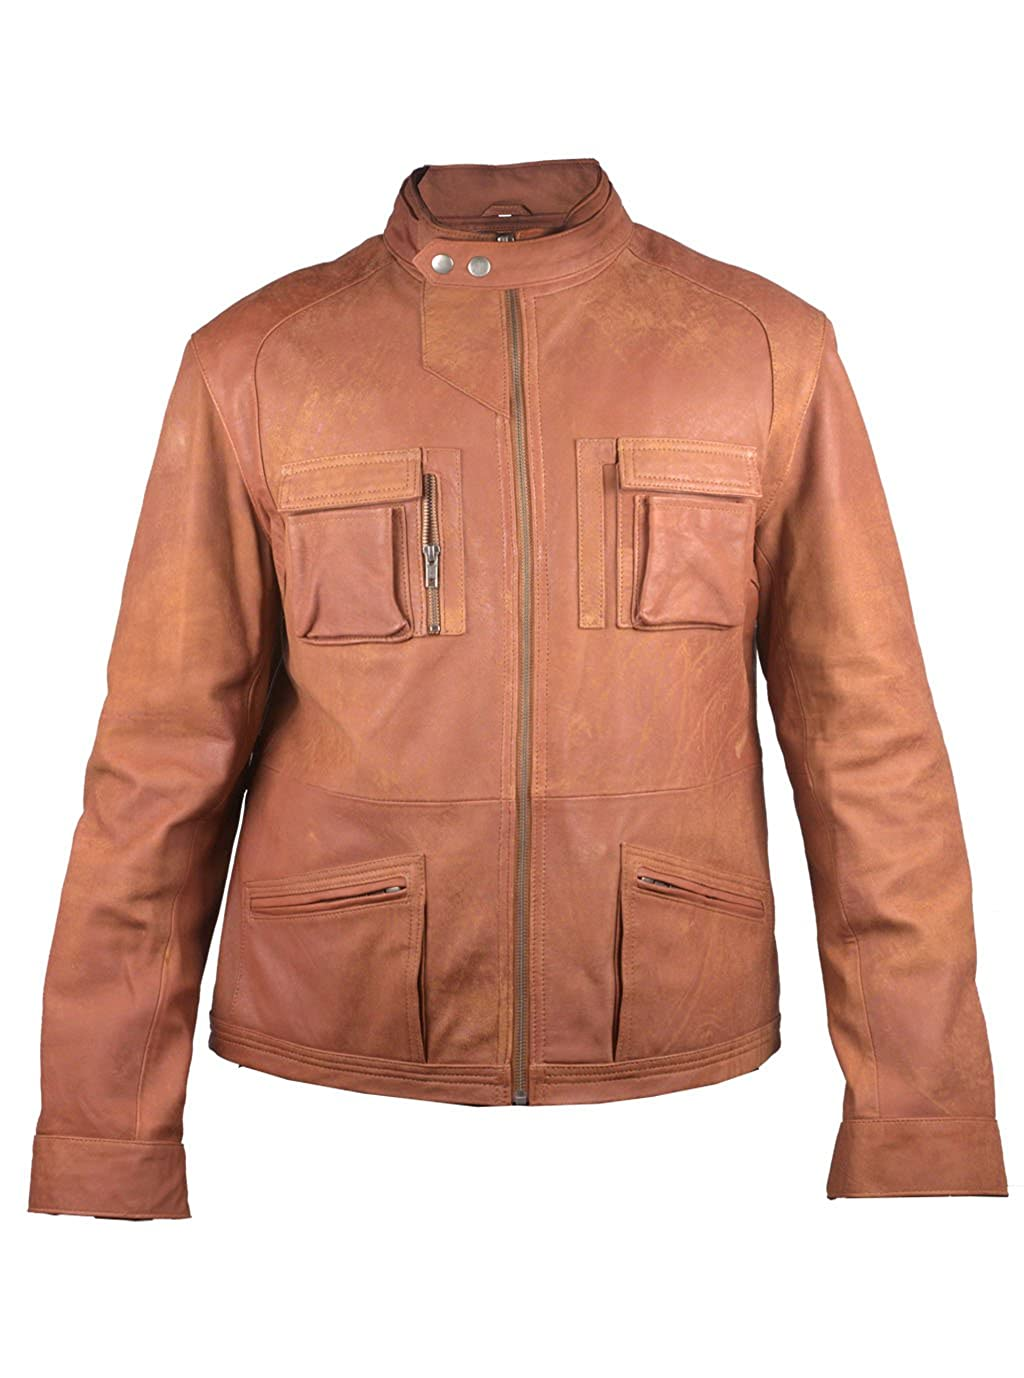 FactoryExtreme Milano Mens Black or Tan Brown Leather Jacket at ...